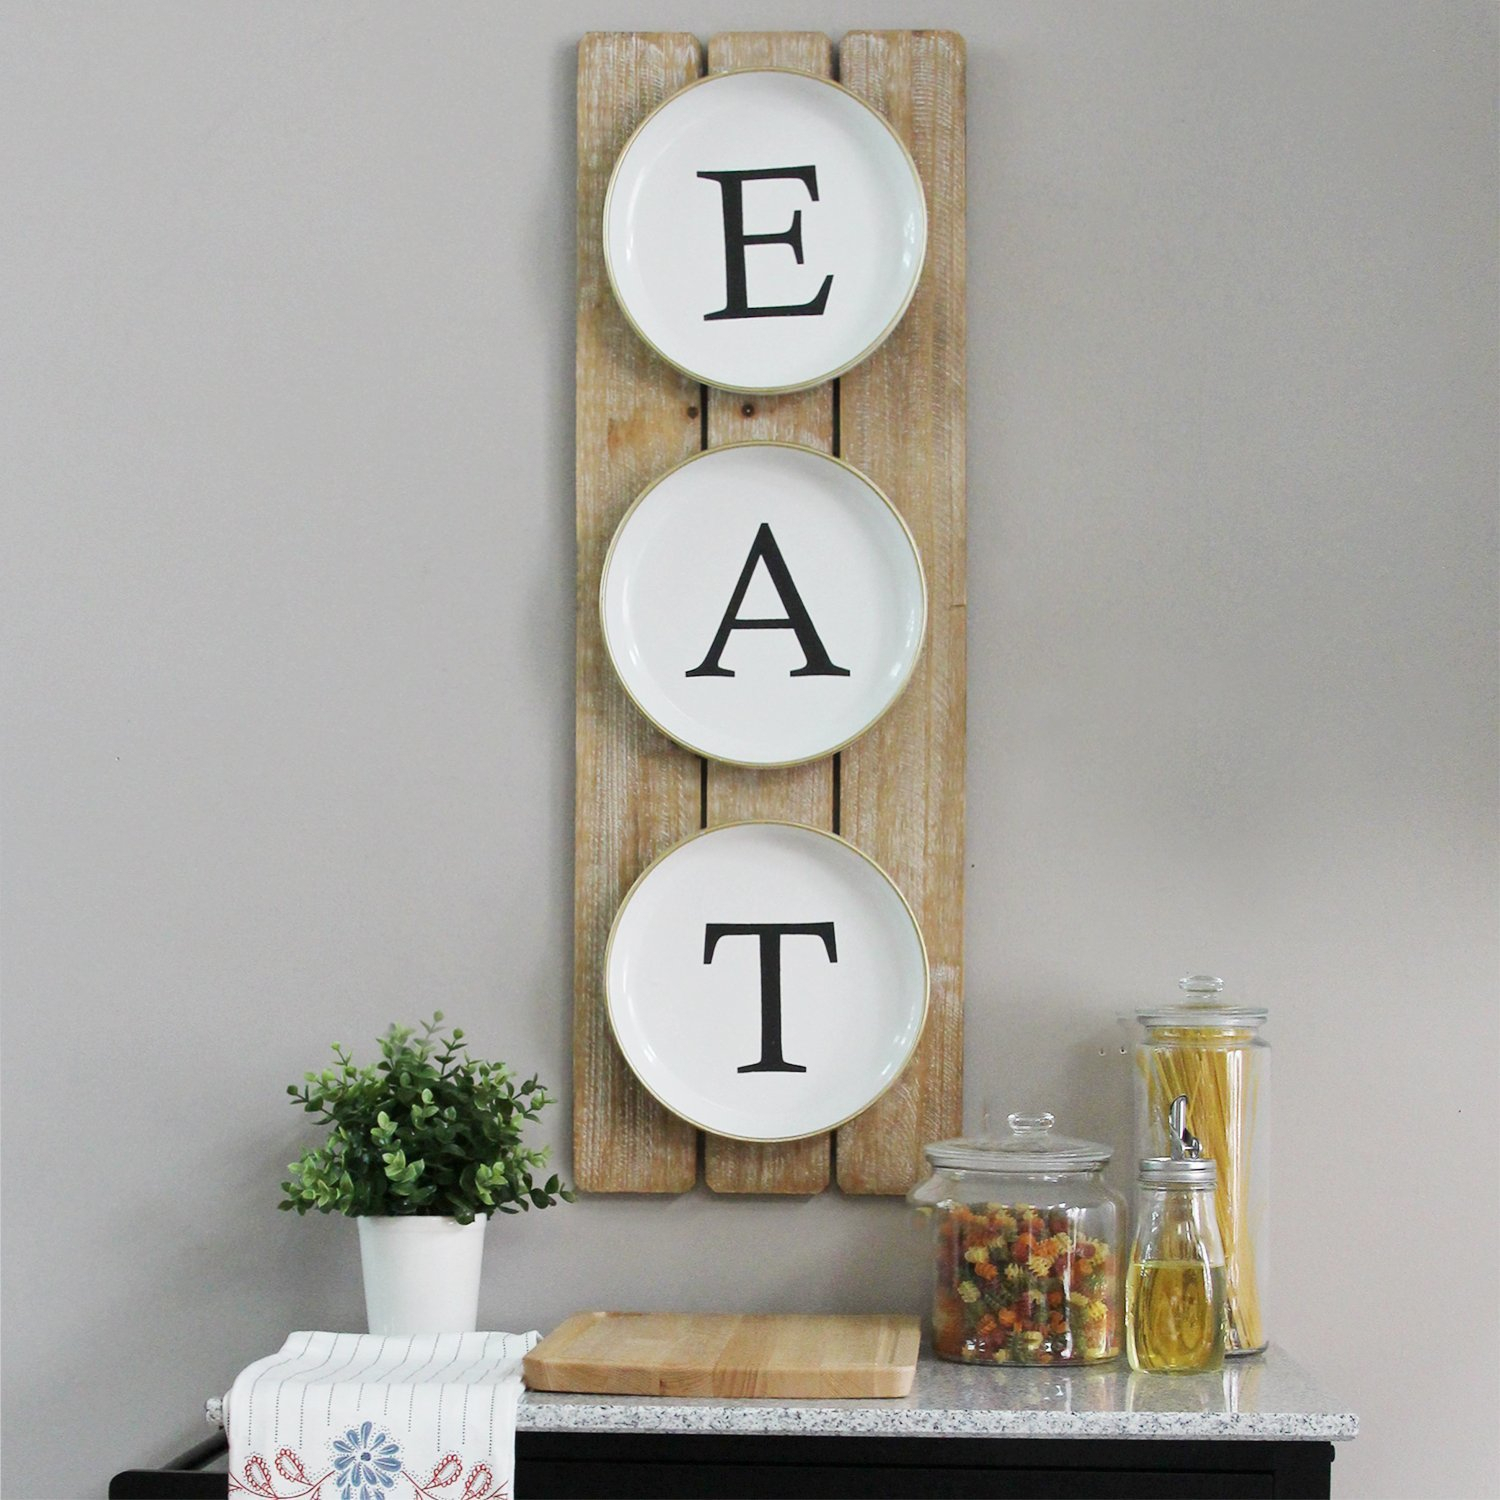 Eat Here Sign | Wayfair Throughout Casual Country Eat Here Retro Wall Decor (Gallery 5 of 30)